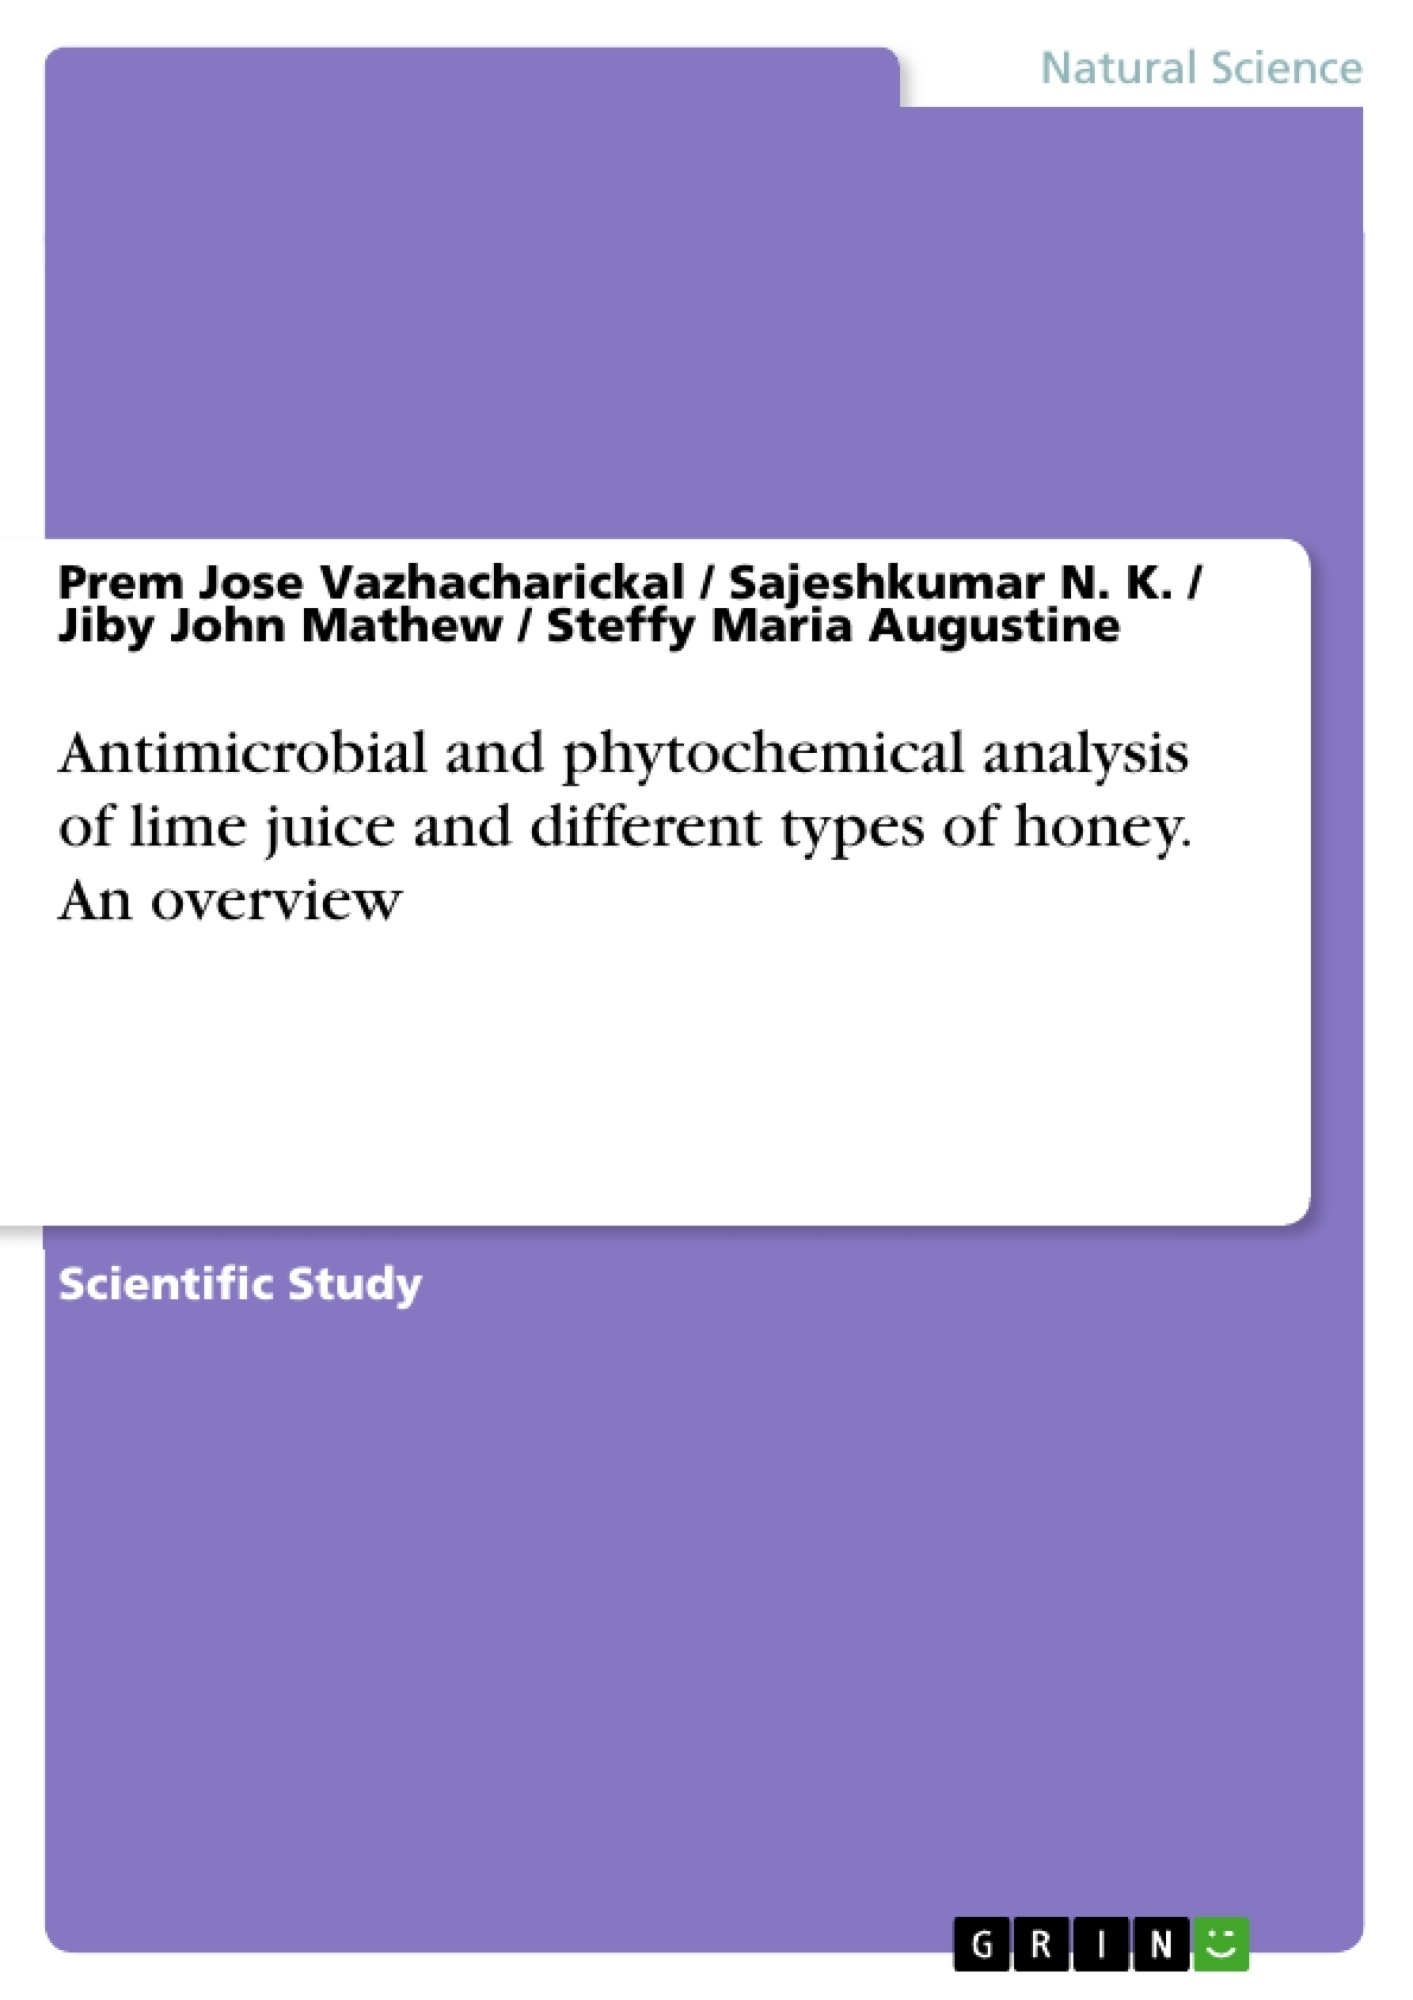 Title: Antimicrobial and phytochemical analysis of lime juice and different types of honey. An overview